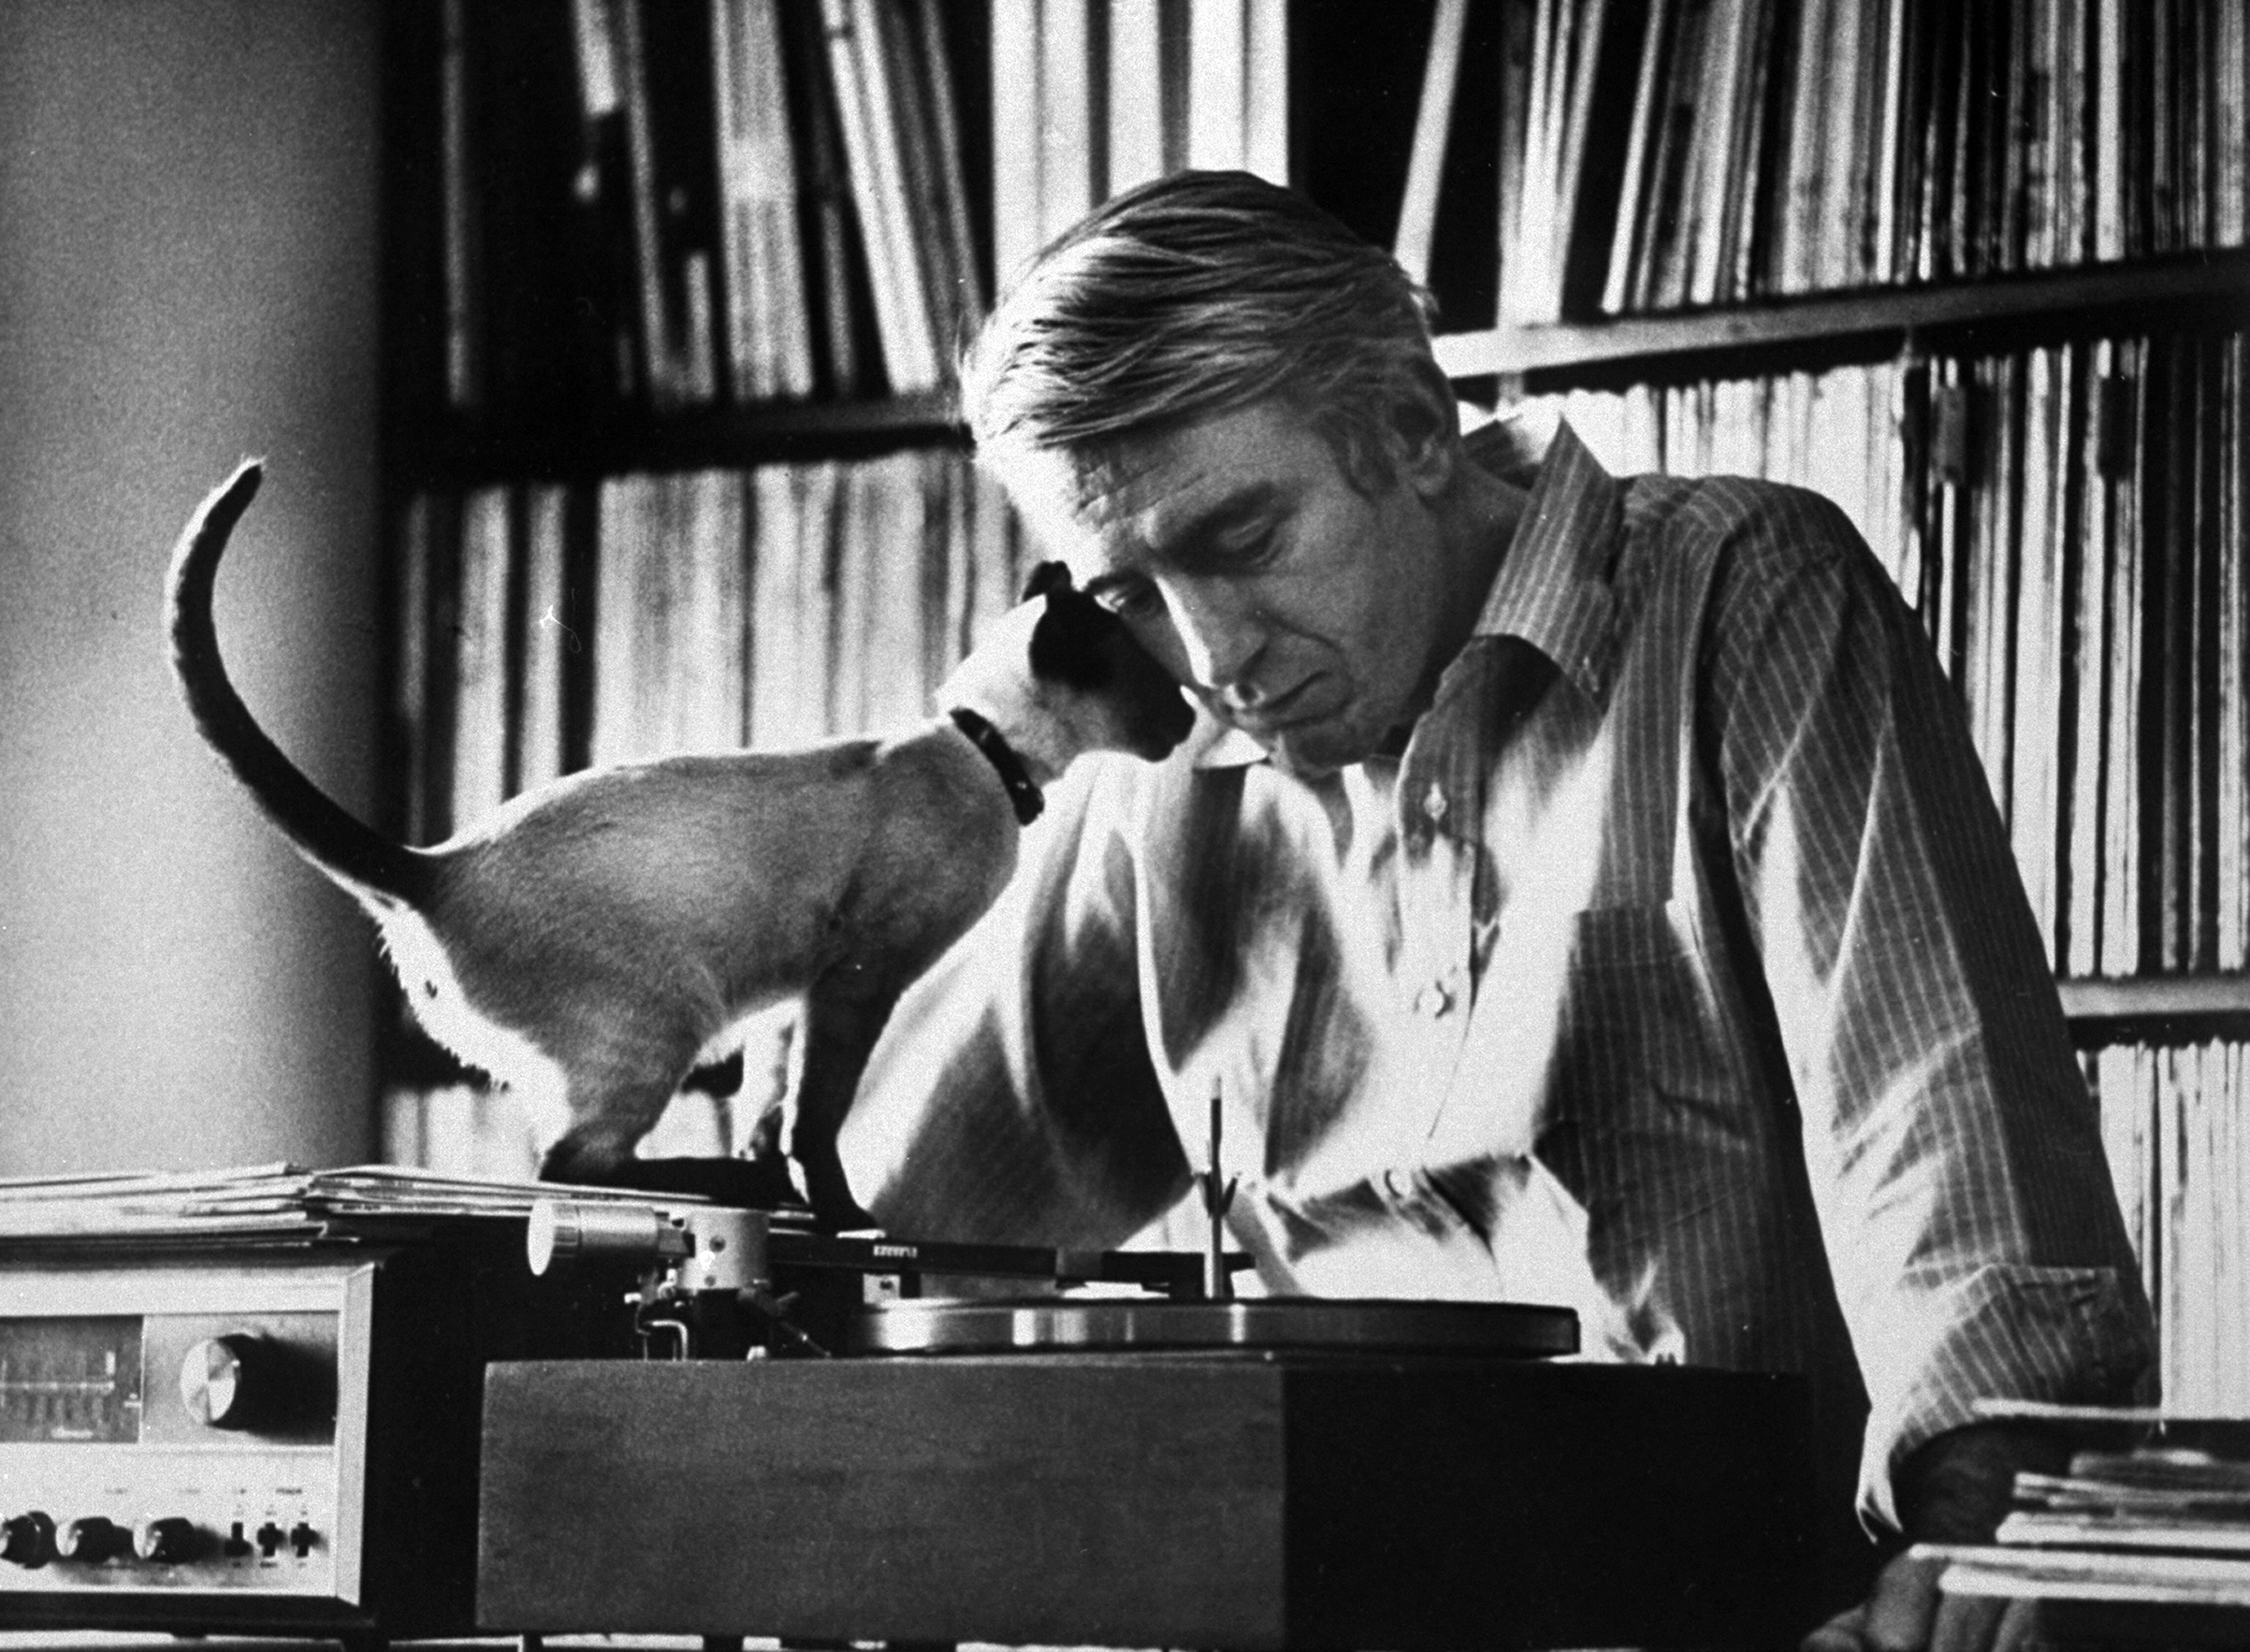 Poet Rod McKuen playing record on stereo set while pet Siamese cat nuzzles his face affectionately, 1967.